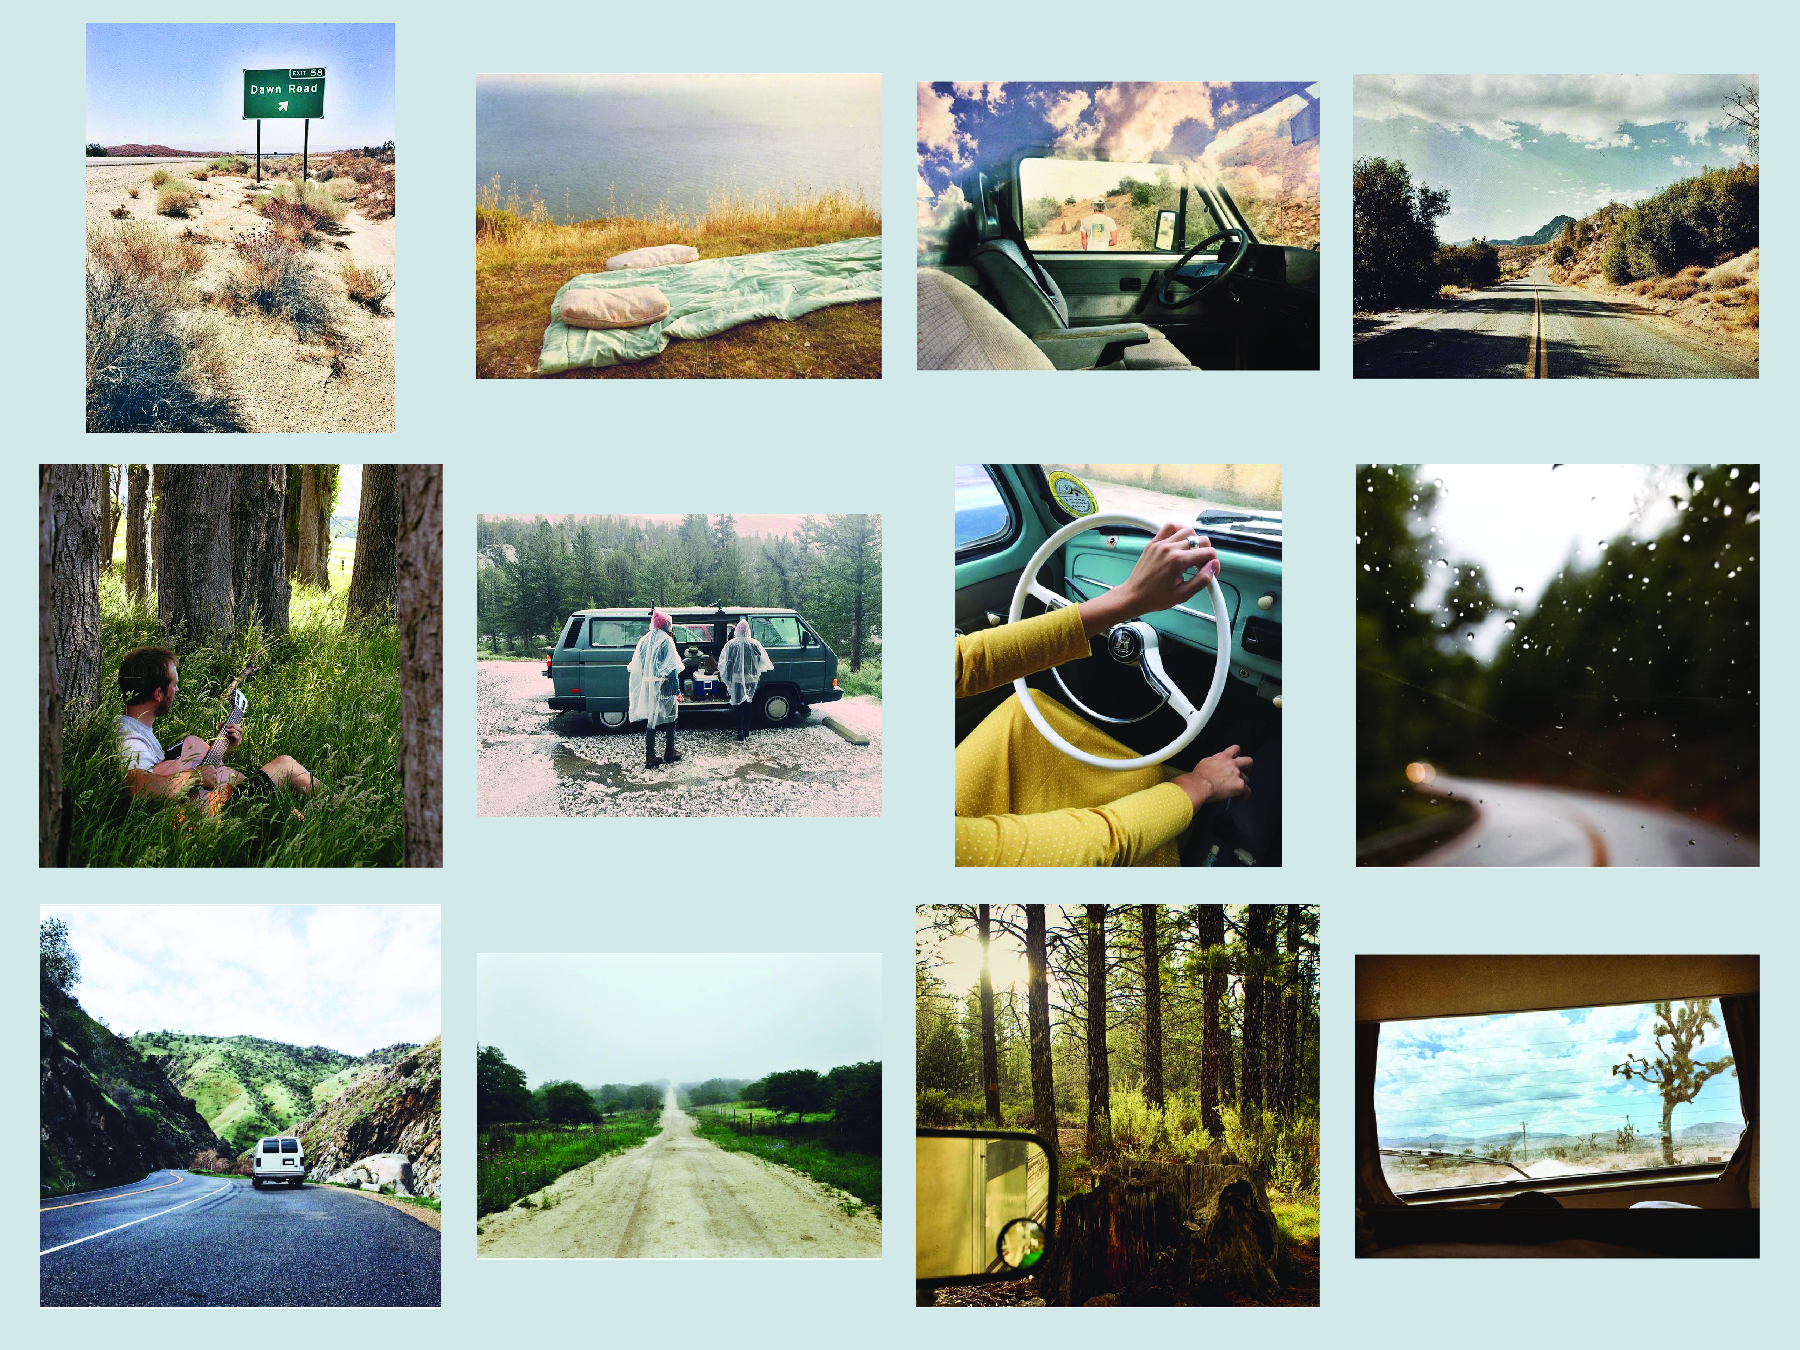 Road Trippin road trip inspiration images on the road car camping wild free adventure